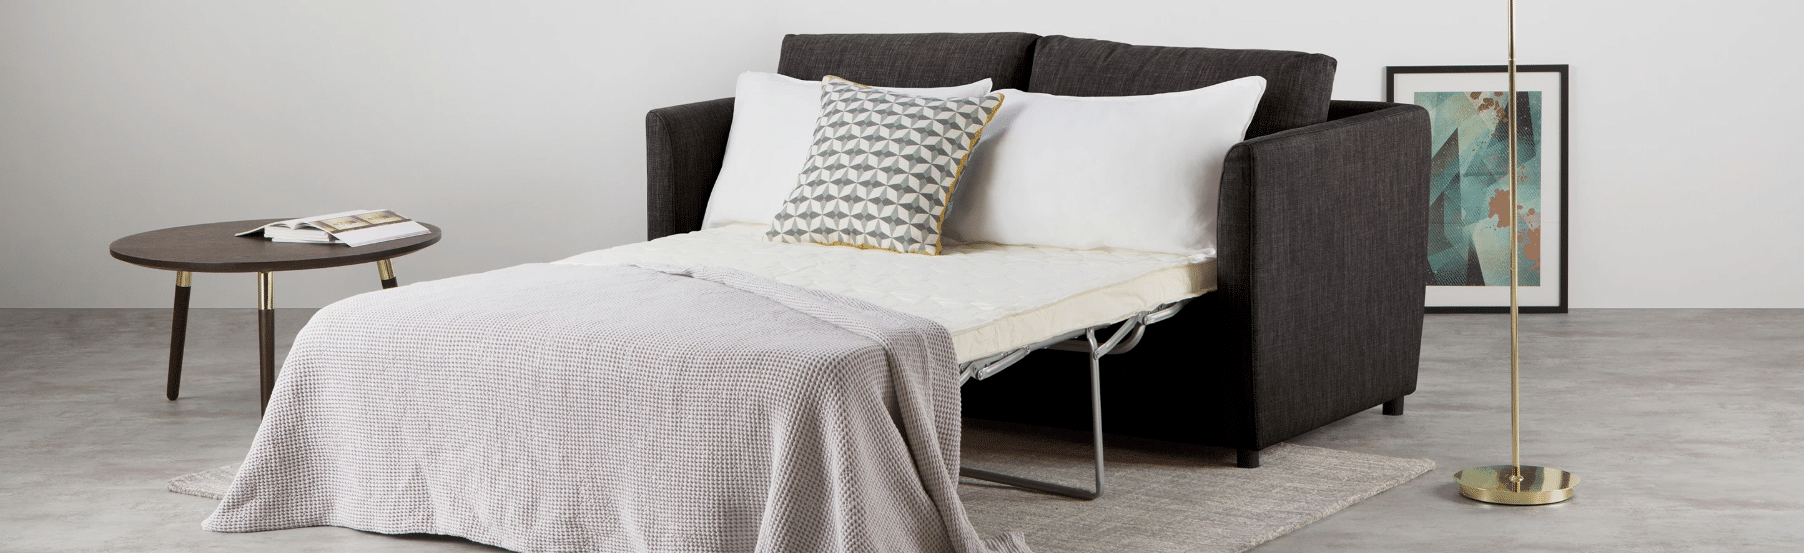 Best Sofa Bed Mattresses Reviewed in Detail